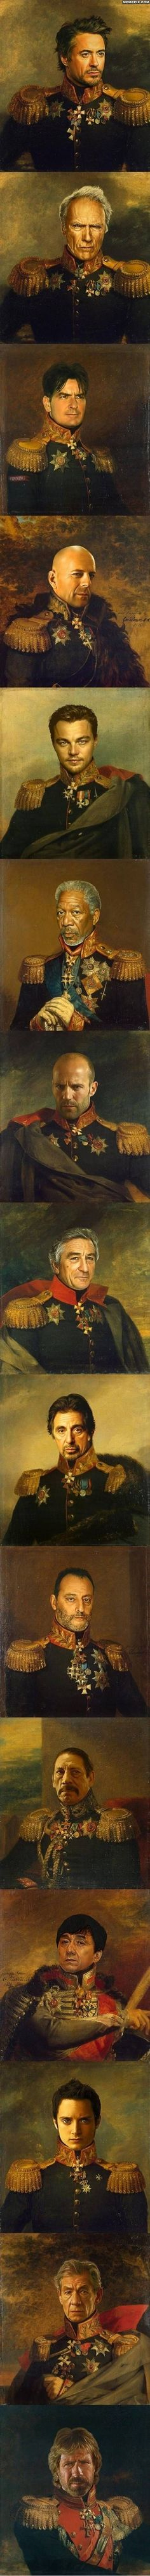 Some Hollywood actors look good painted as military leaders. Others wouldn't pass the screen test.